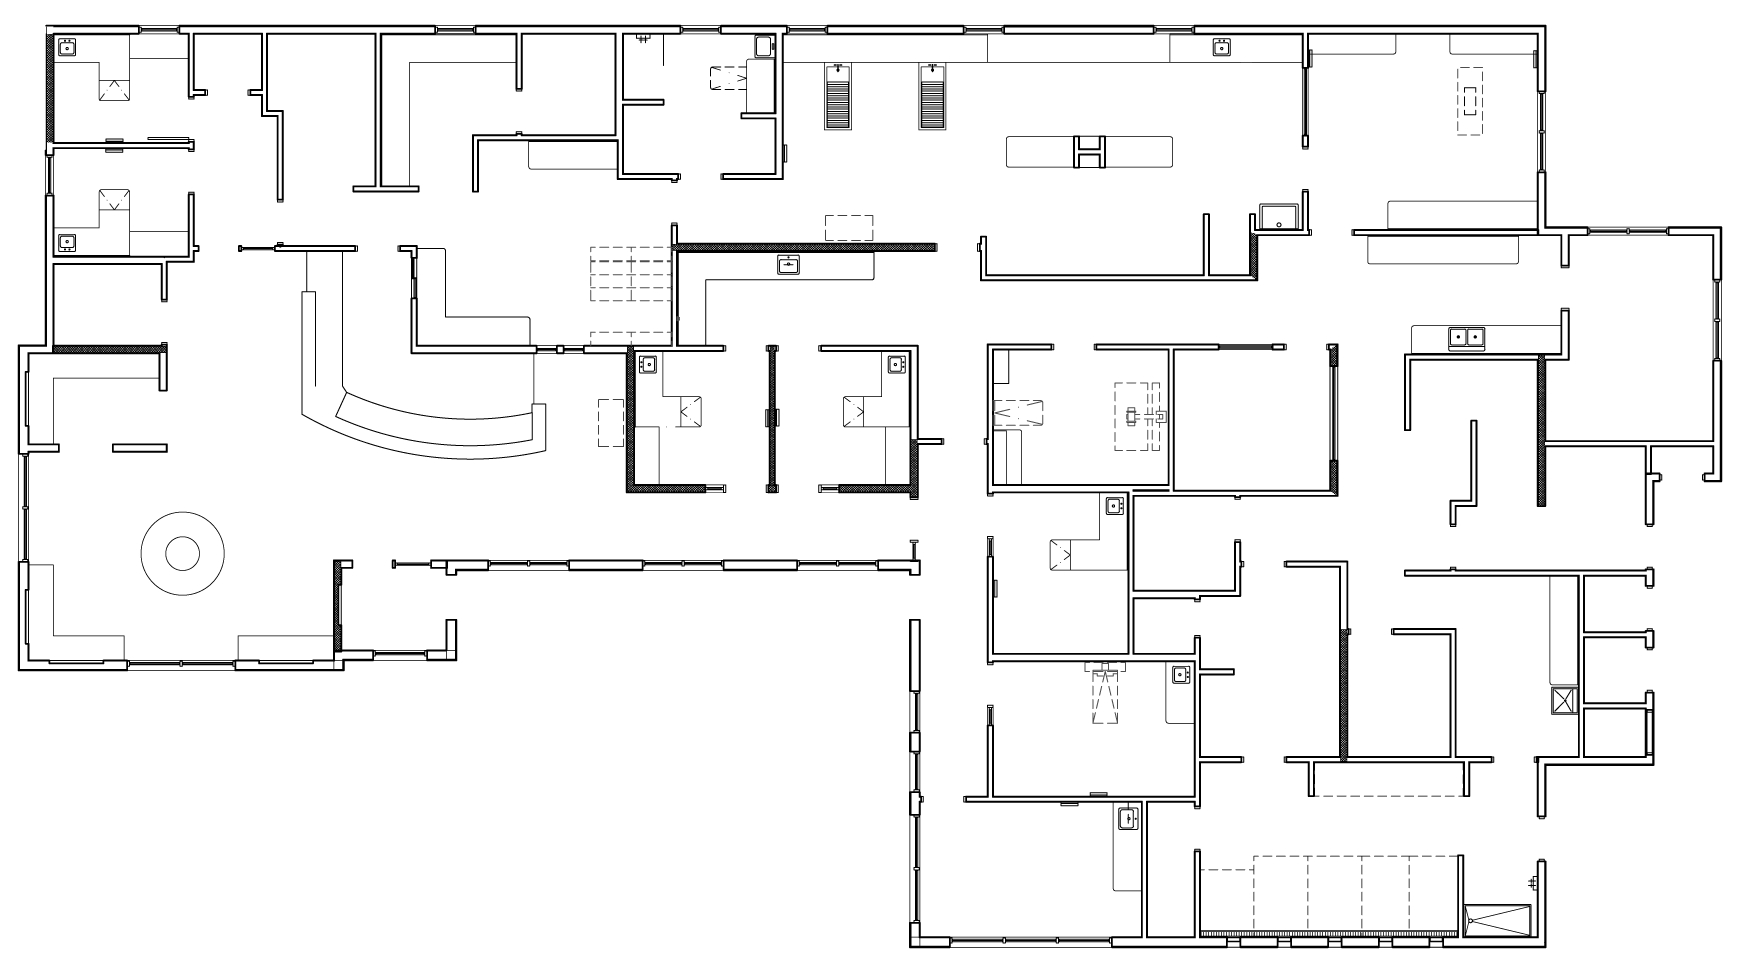 Gruda Veterinary Hospital floor plan